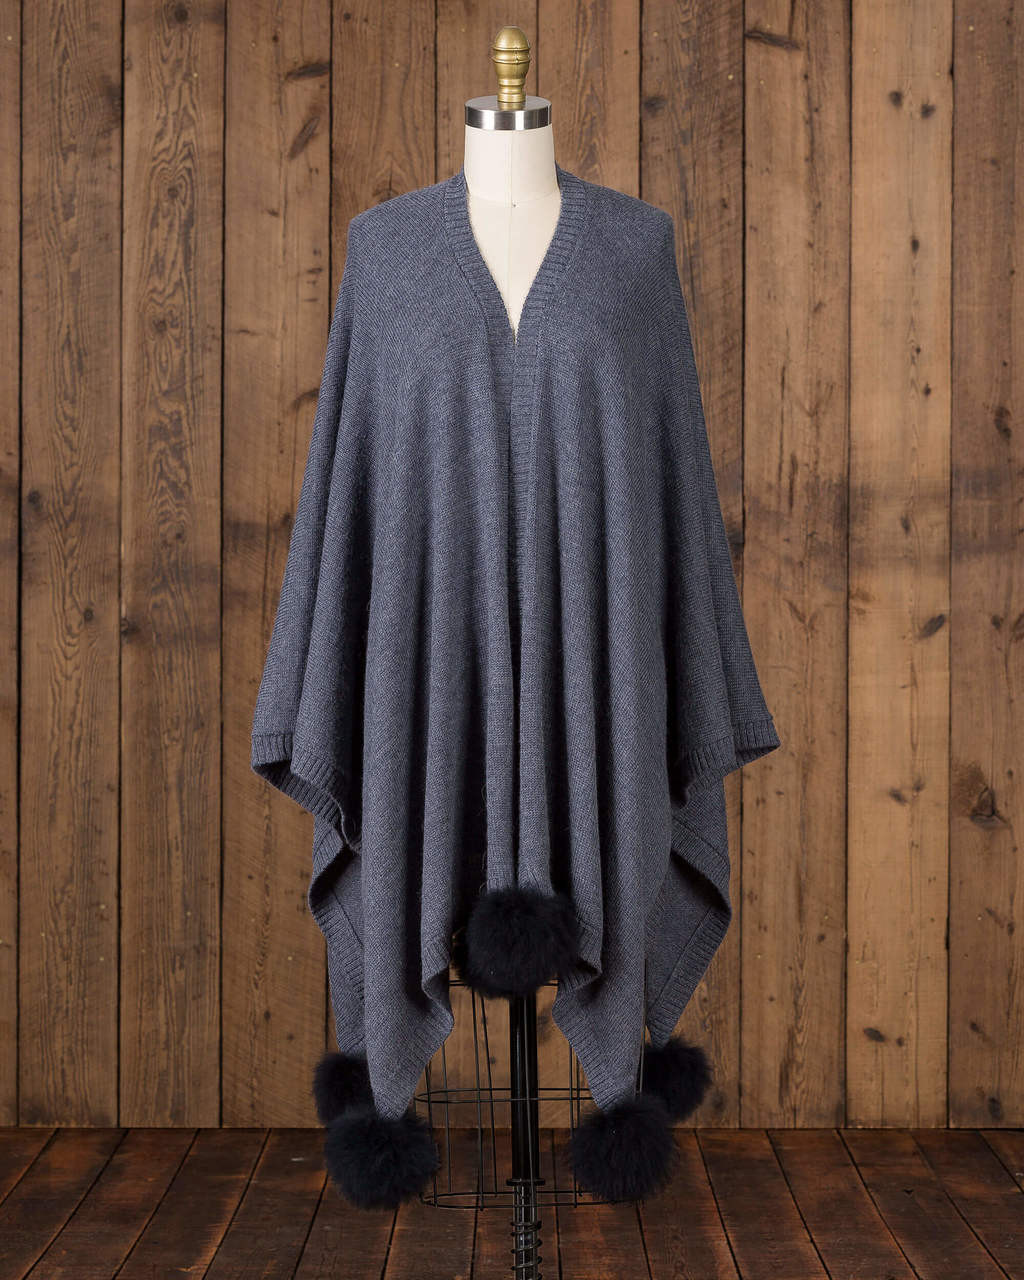 alicia adams alpaca alpina cape, alpaca cape with fur trim, alpaca poncho, alpaca poncho womens, alpaca vs cashmere, denim blue and navy baby alpaca cape